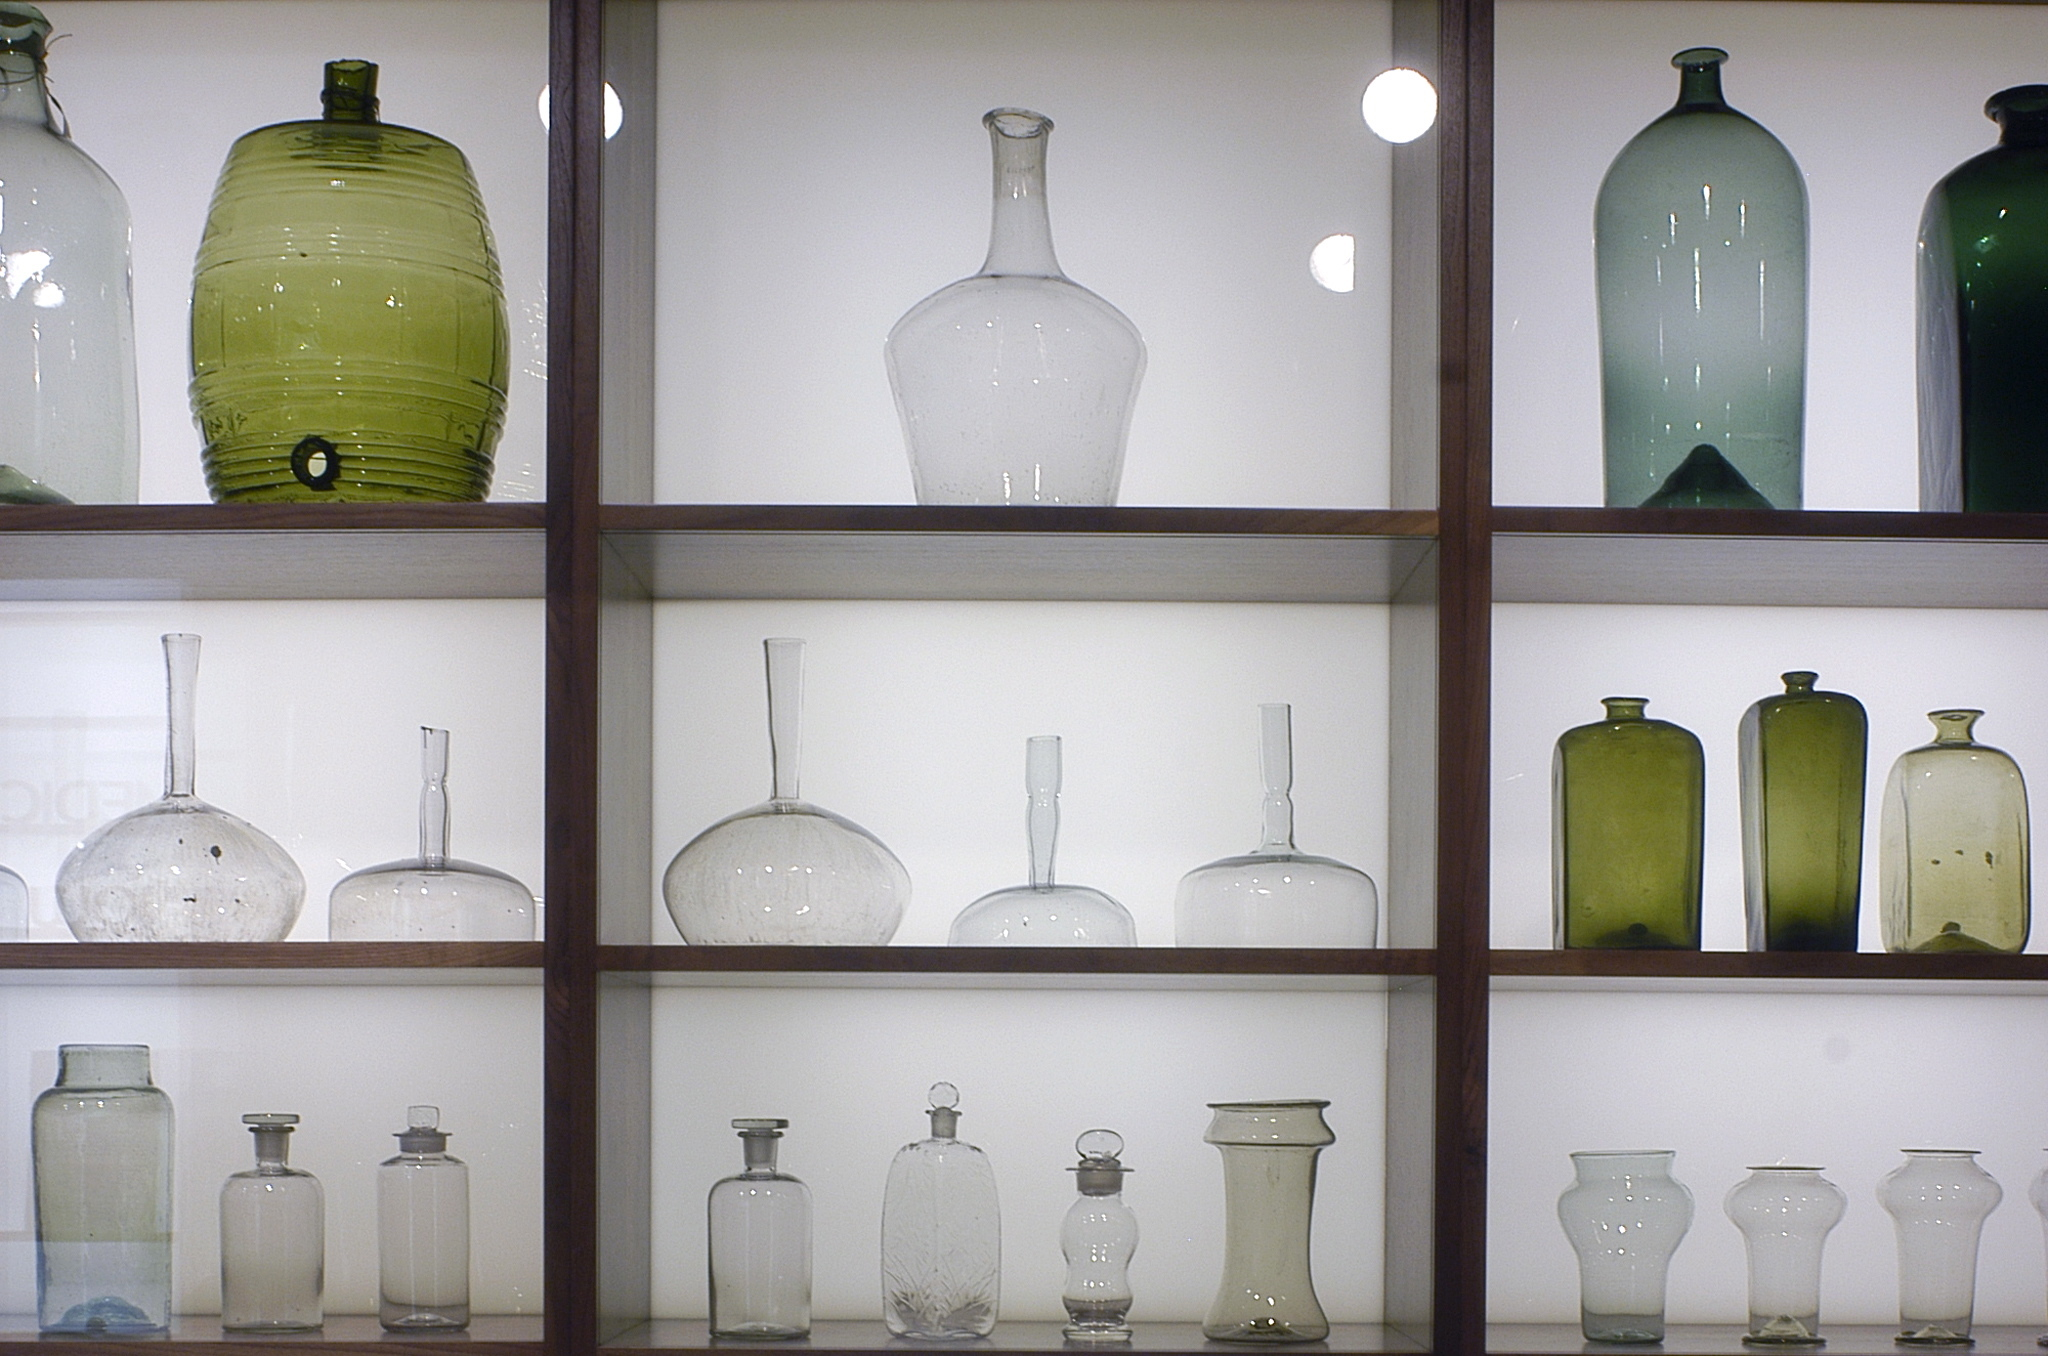 Wellcome Collection Glass bottles